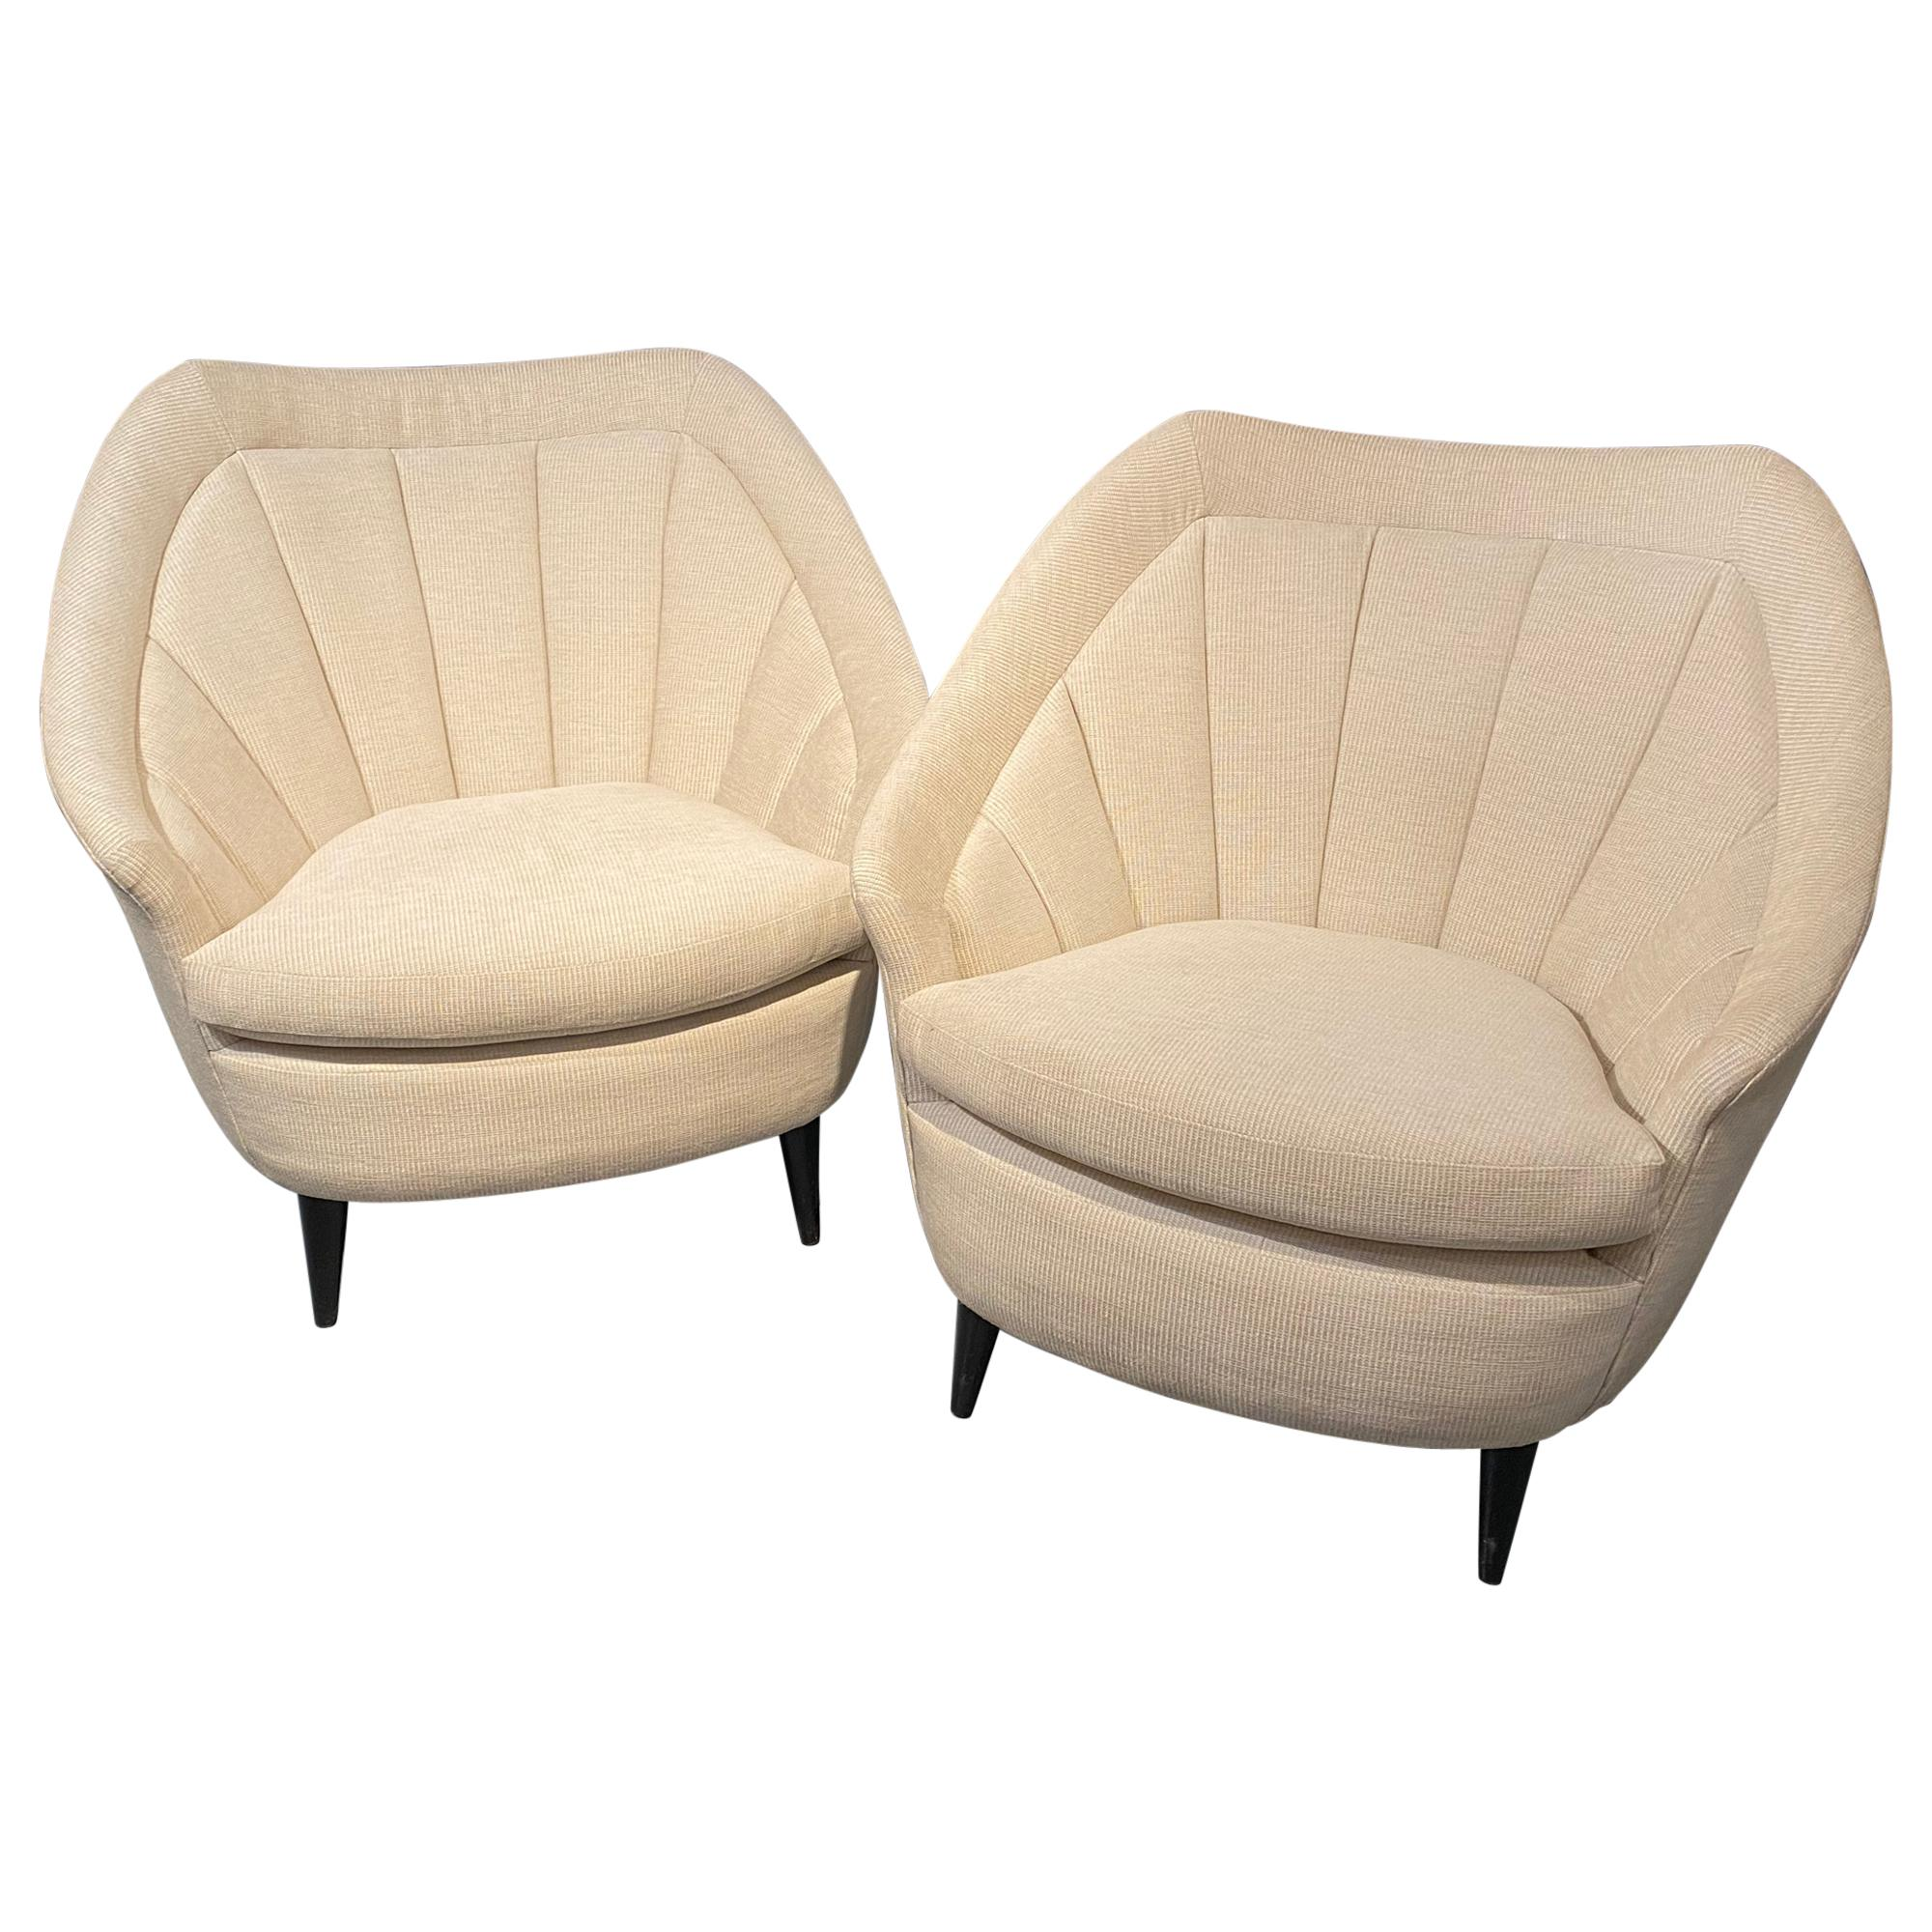 Adrian Pearsall Style Mid-Century Modern Lounge Chairs, Armchairs